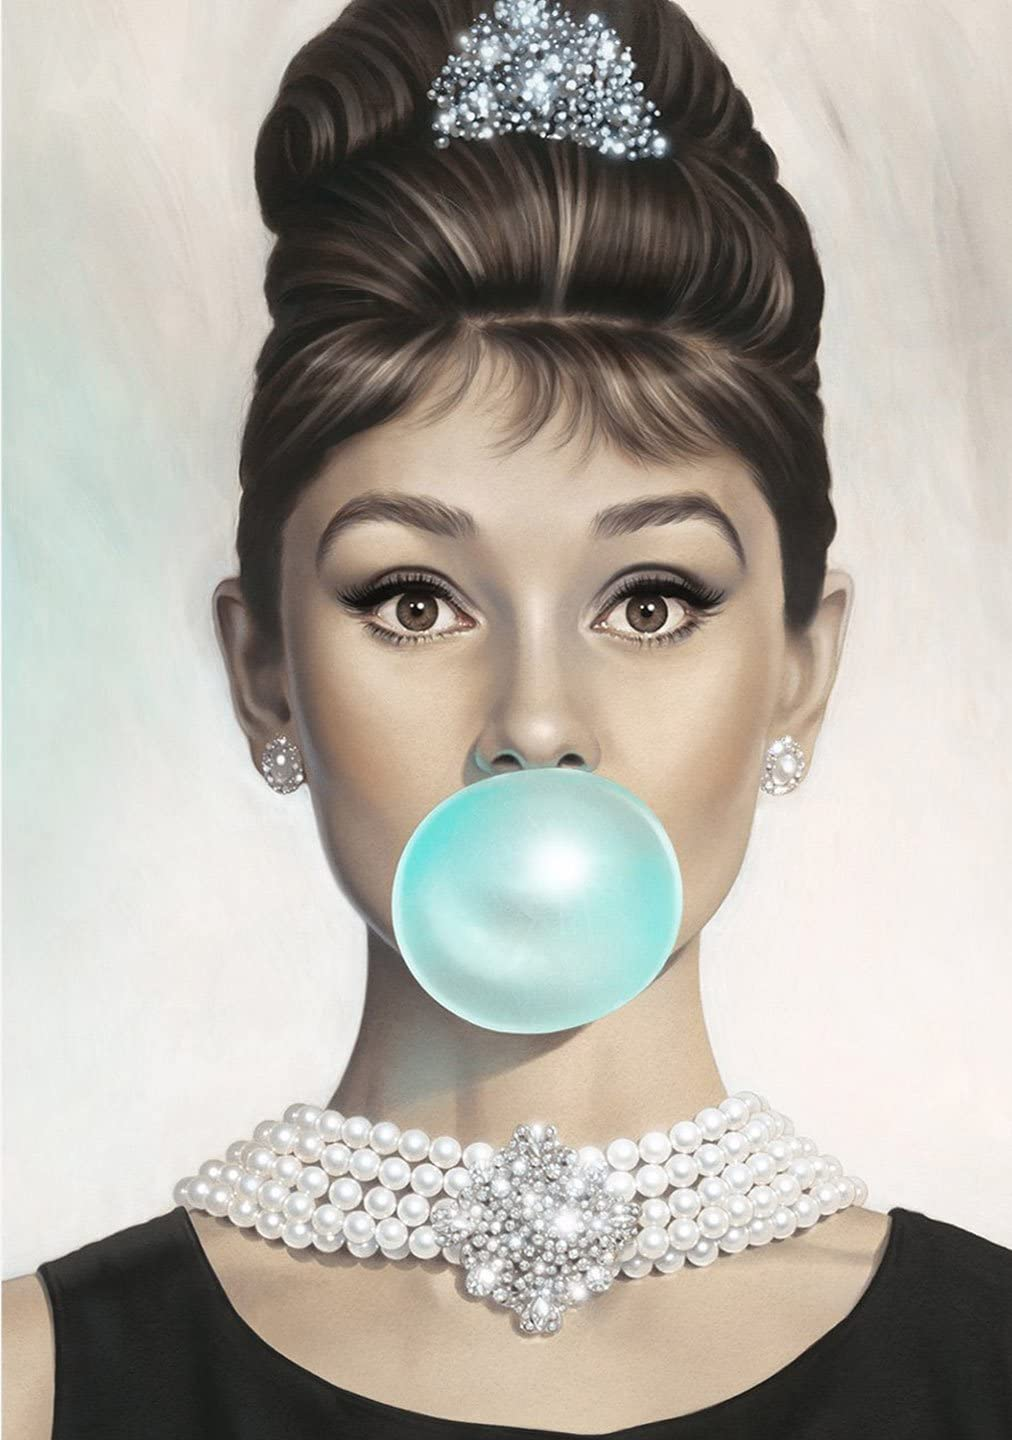 VAN EYCK Audrey Hepburn Tiffany blue Bubble Gum Canvas Poster Wall Art for Guest Bedroom Decor Kitchen decoration Living Home Decorations(12x16 inch unframed)